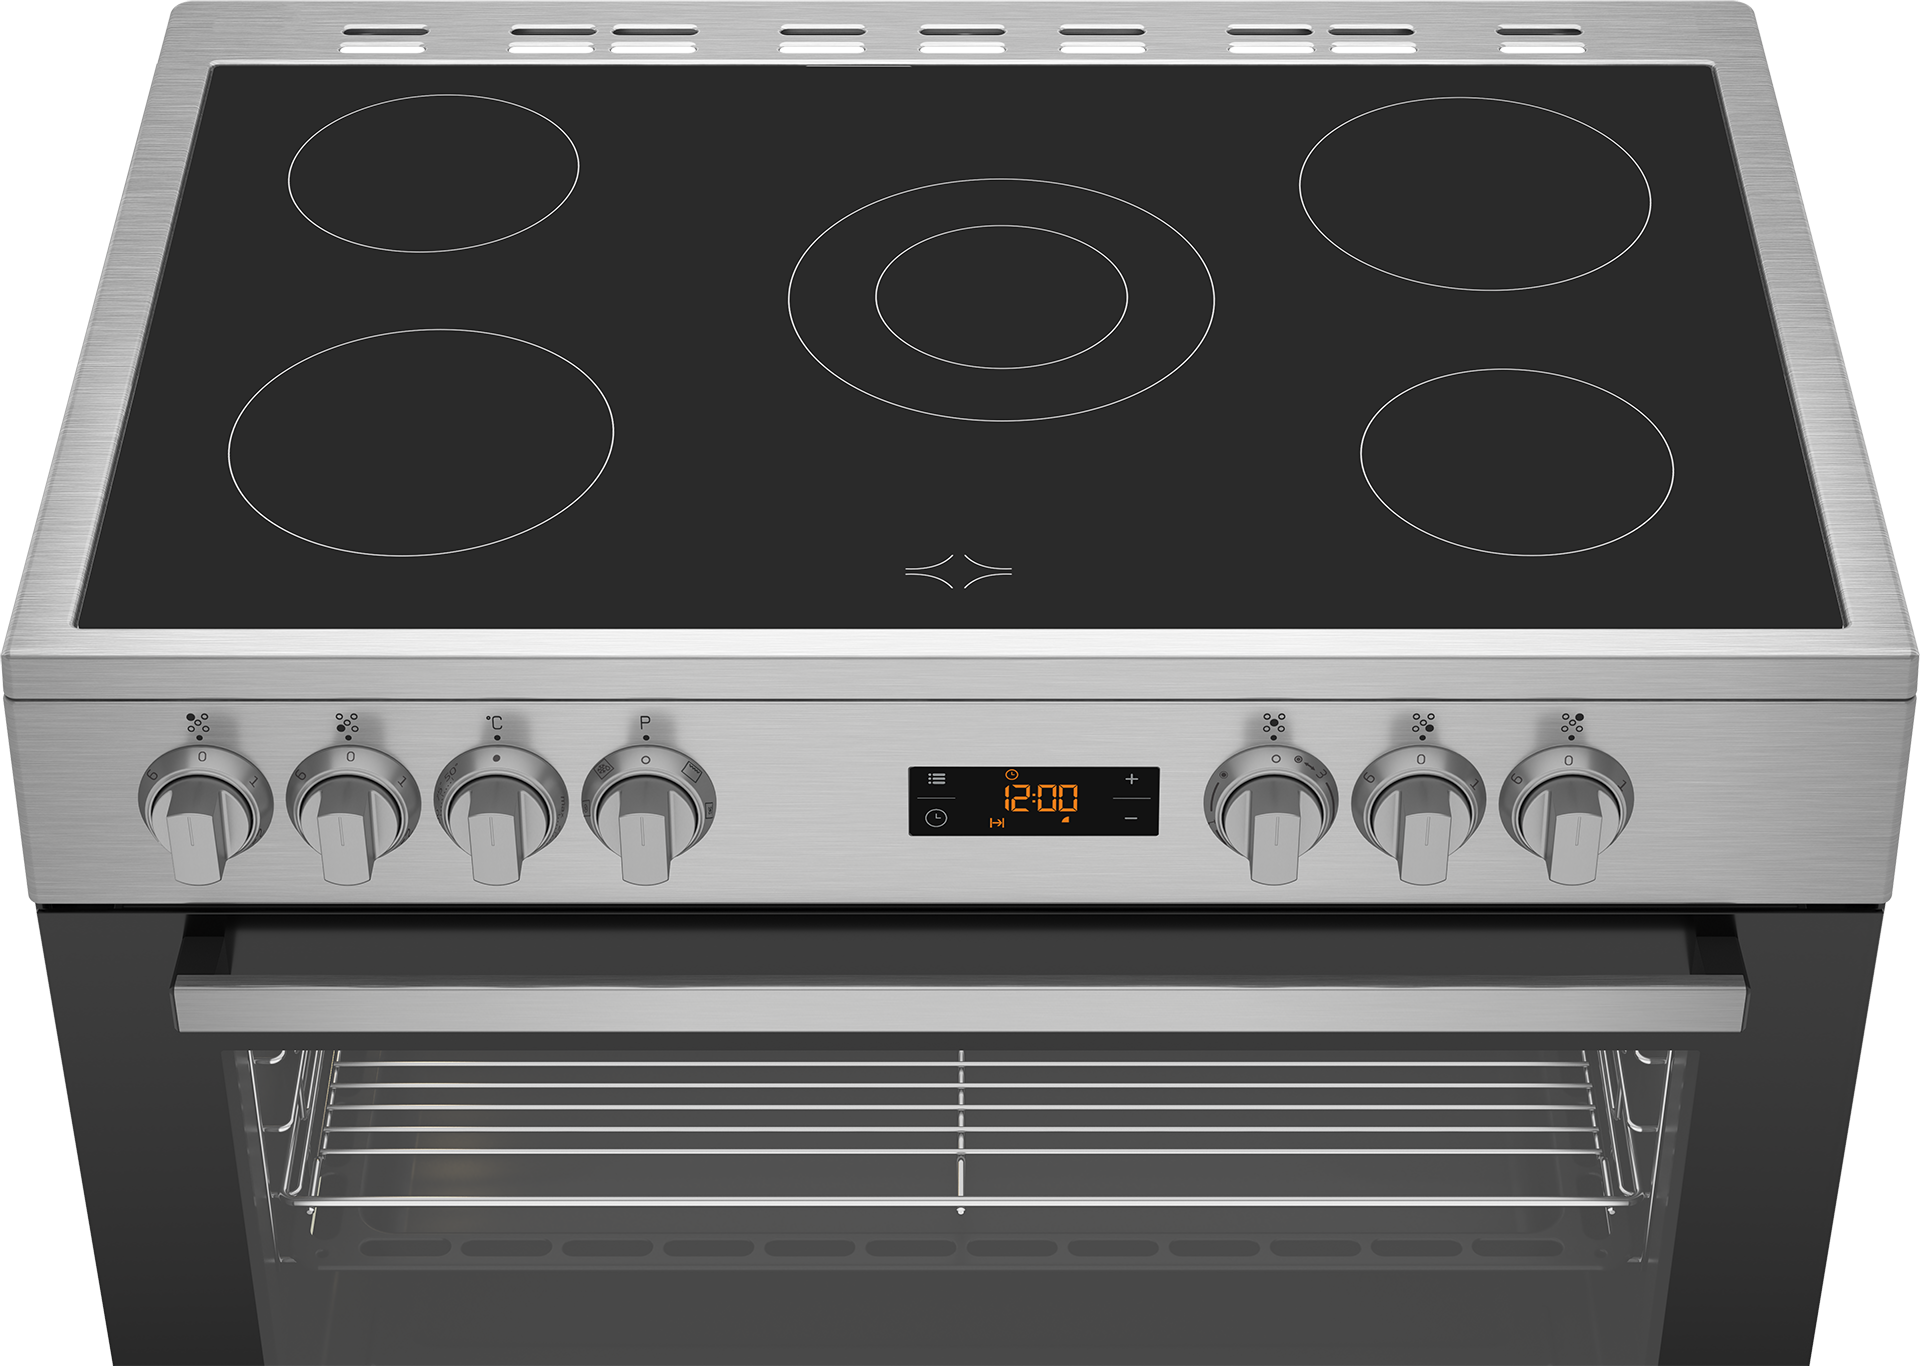 BEKO 90cm Ceramic Electric Cooker GM17300GXNS